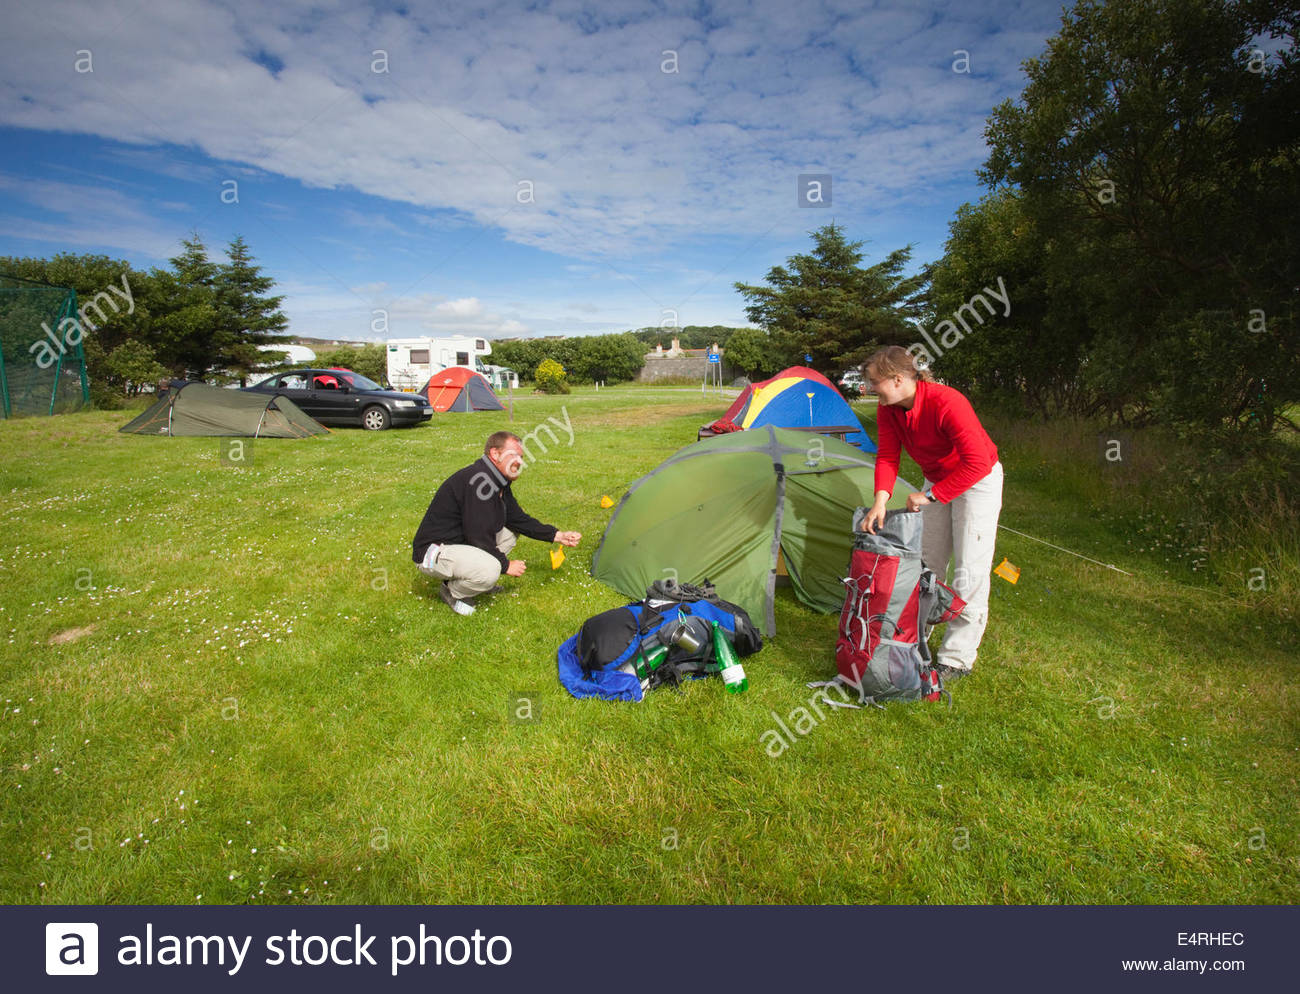 A couple pack up their tent at the Pickaquoy Caravan and Camping Site, Kirkwall, Mainland, Orkney, Scotland. - Stock Image